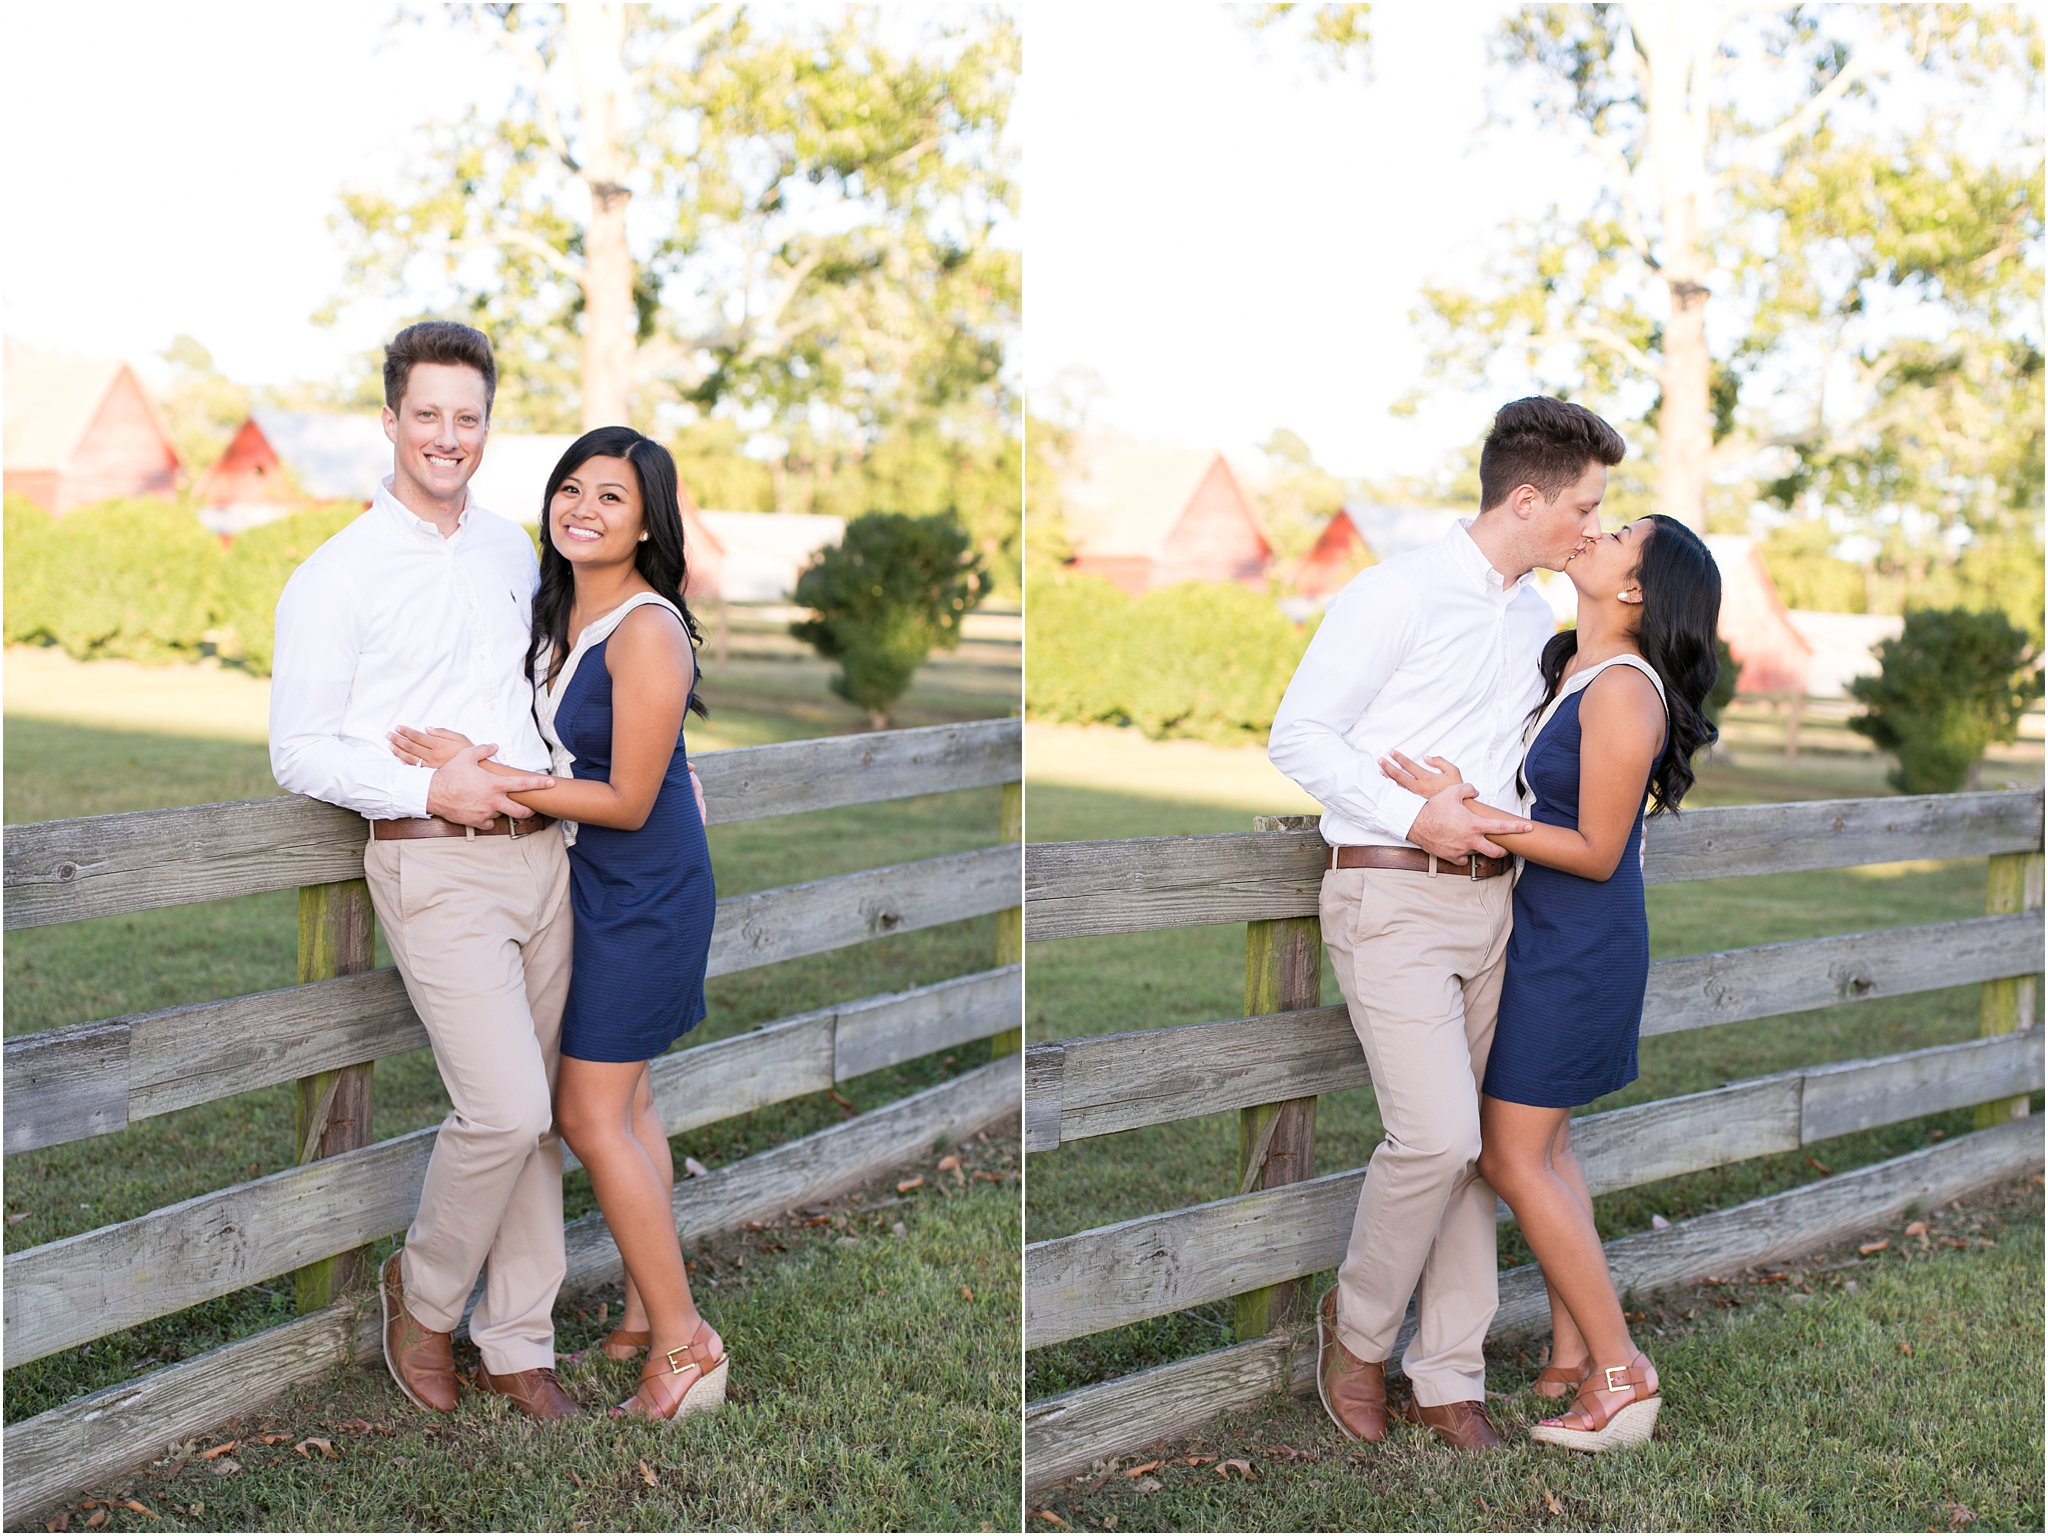 jessica_ryan_photography_virginia_smithfield_historical_downtown_engagement_portraits_candid_authentic_3723